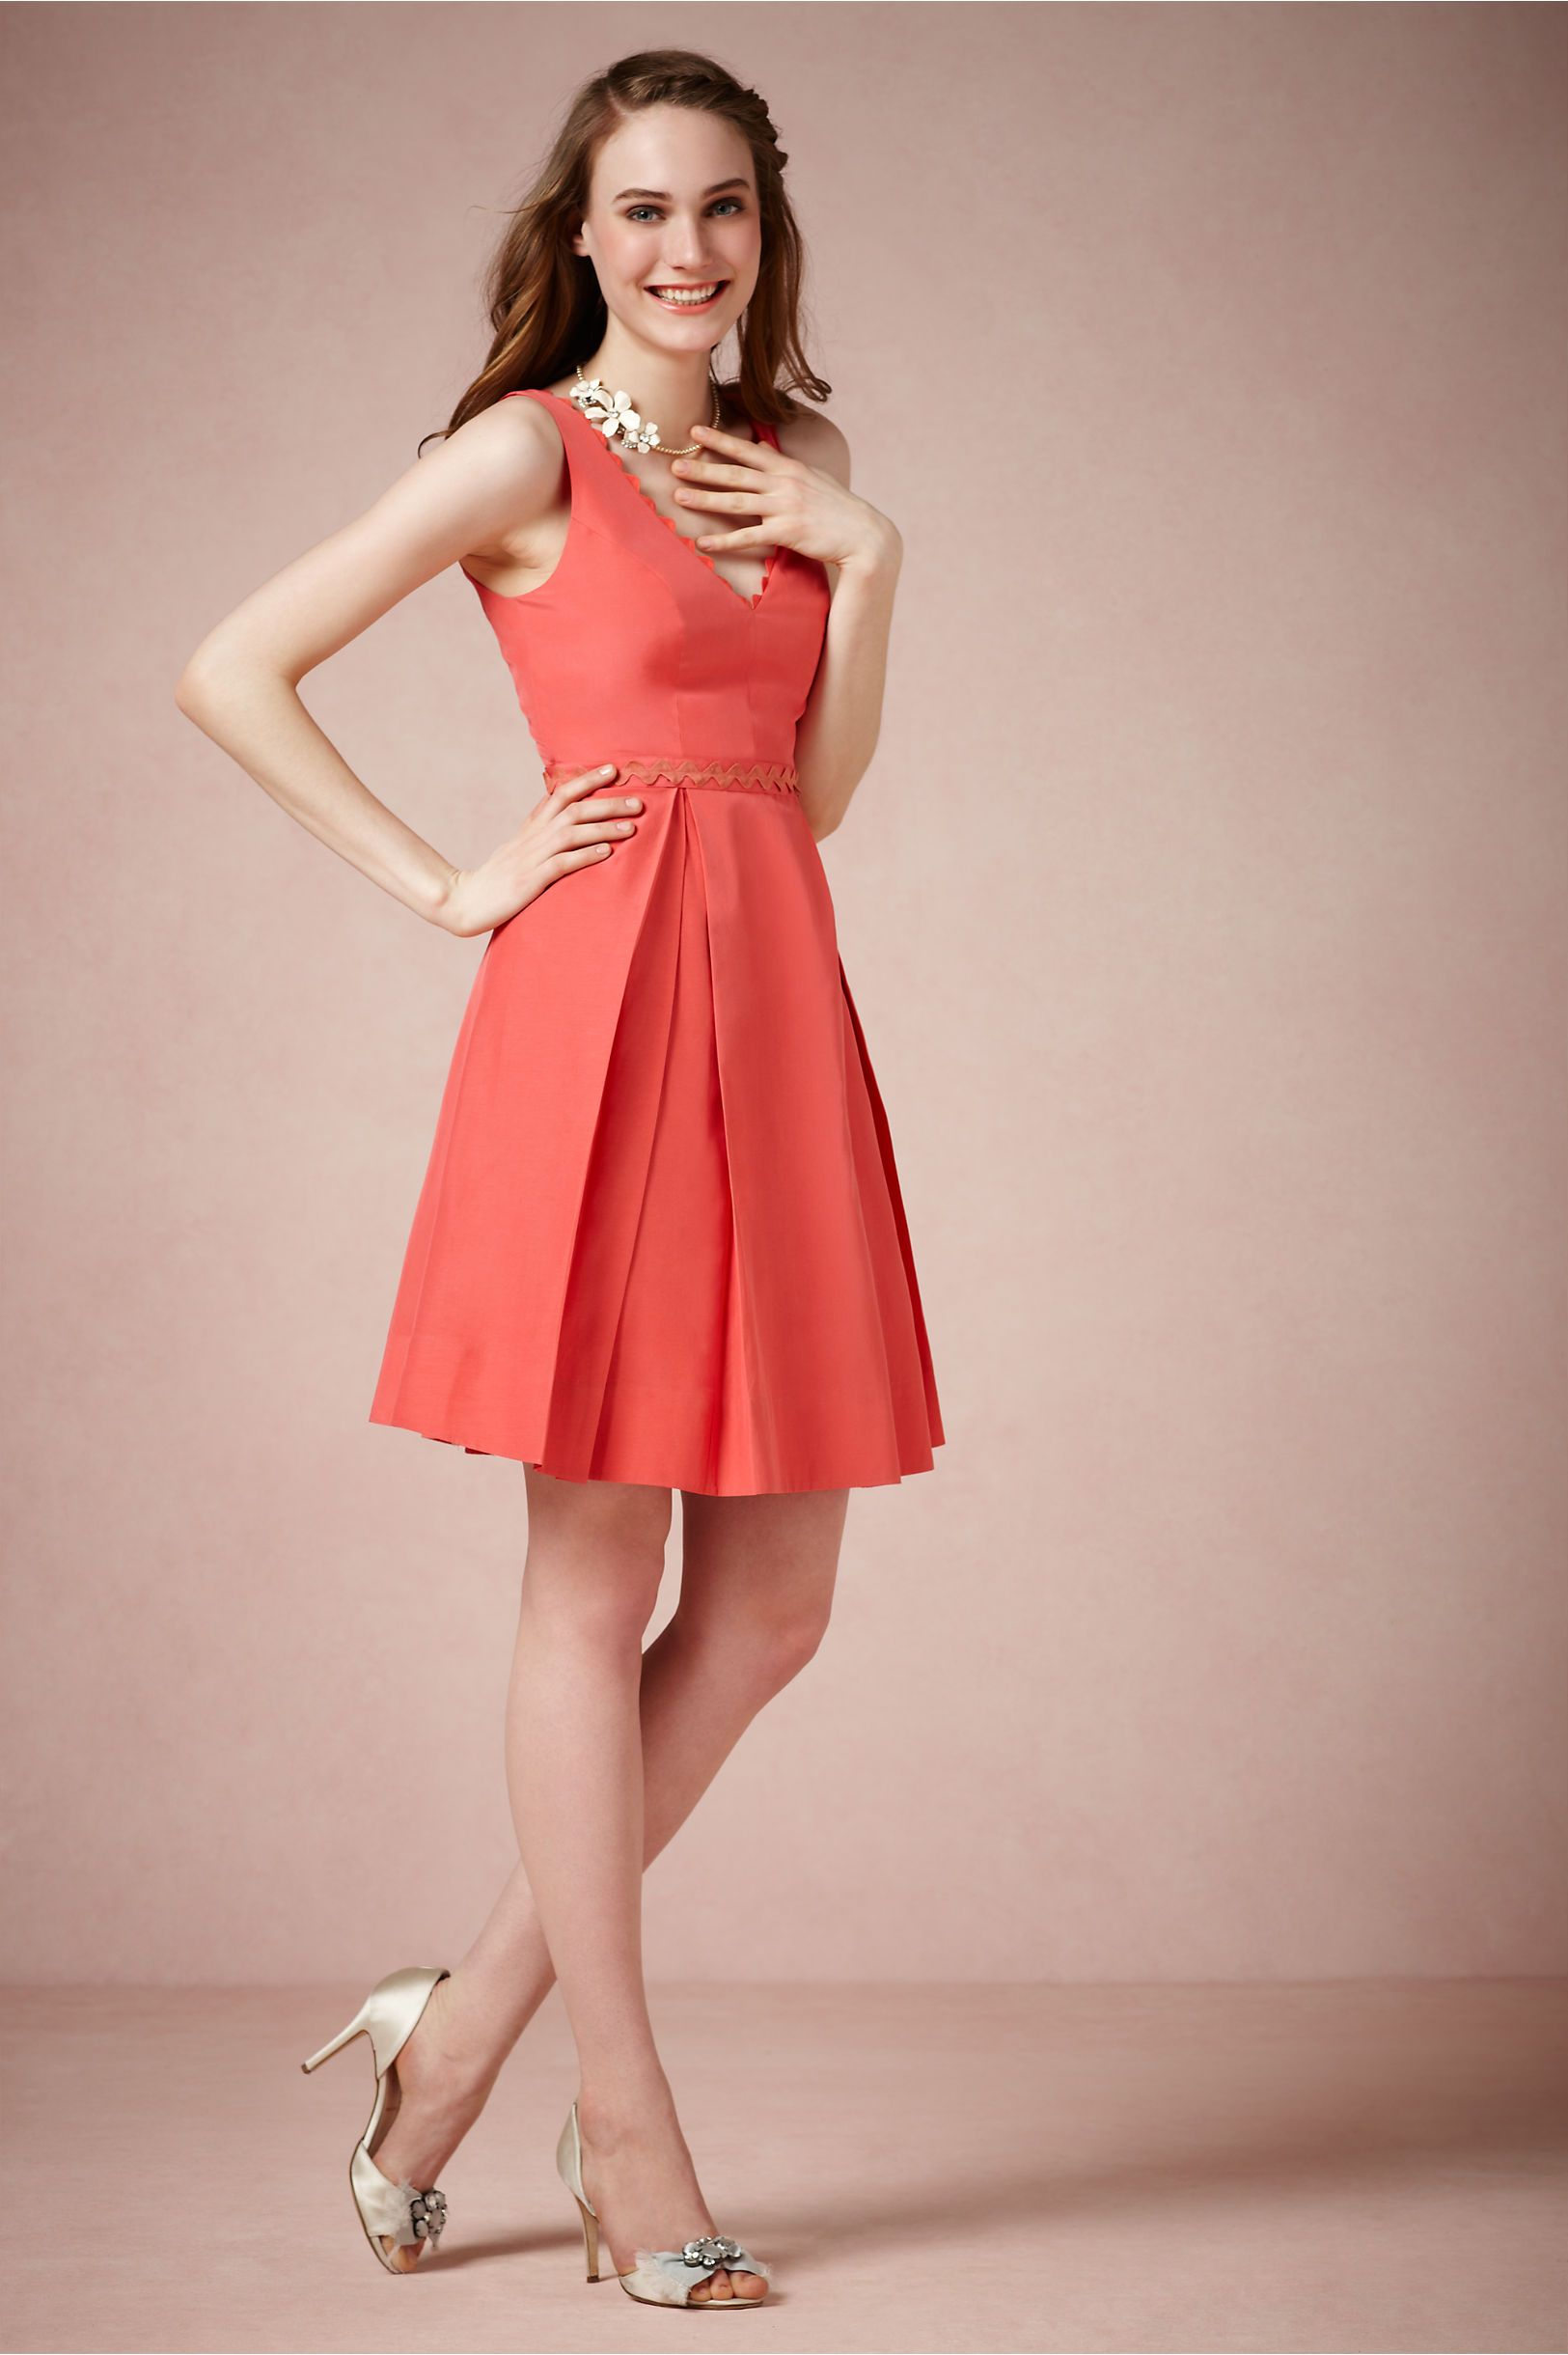 Bridesmaid dress | BHLDN/SUR LA TABLE | Pinterest | Quince años ...